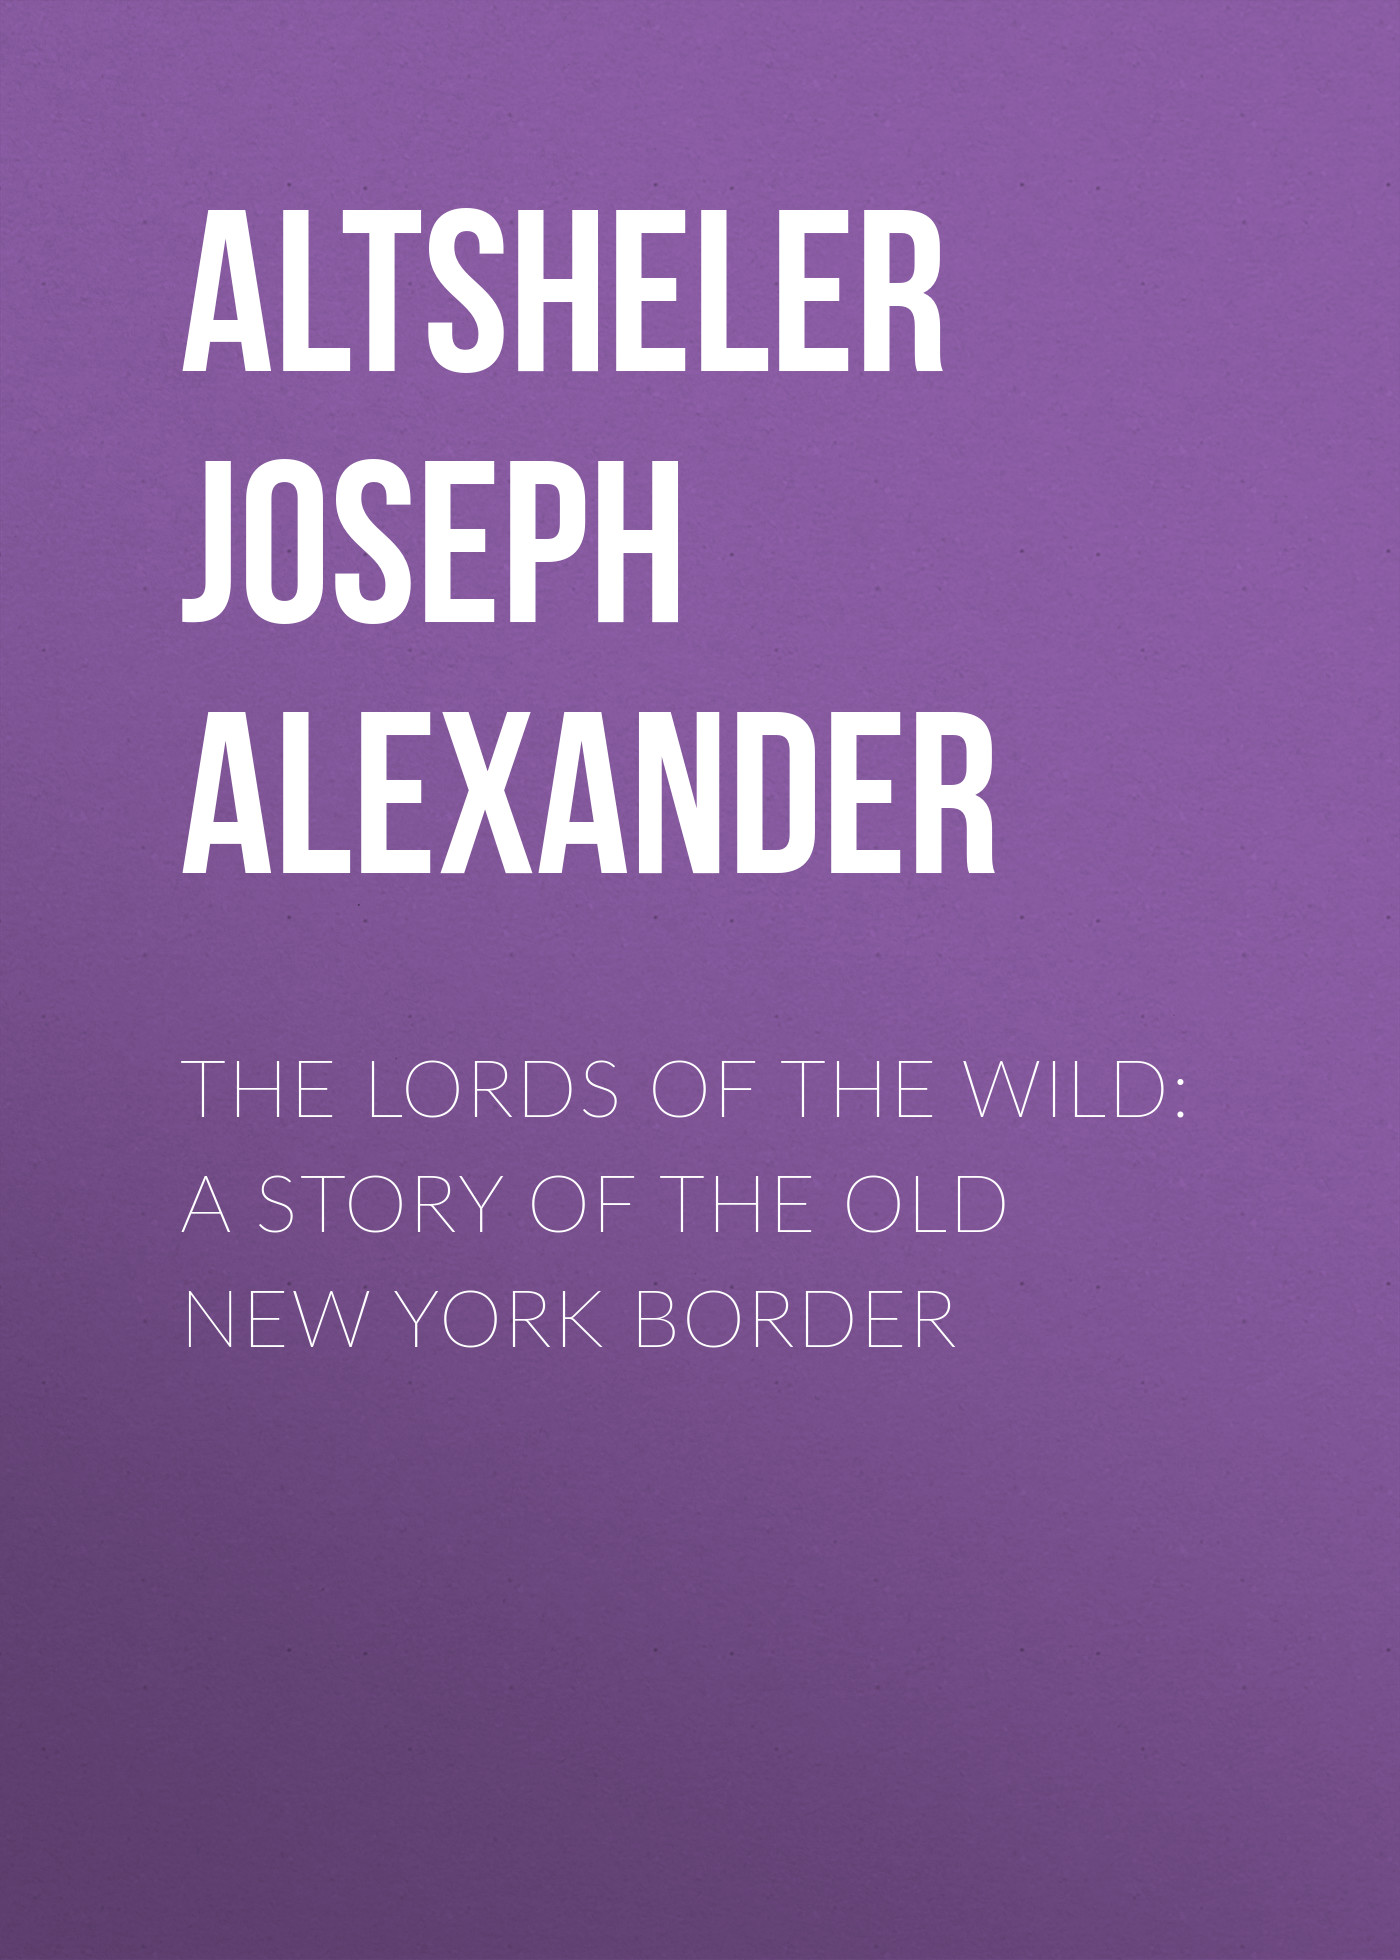 Altsheler Joseph Alexander The Lords of the Wild: A Story of the Old New York Border цена